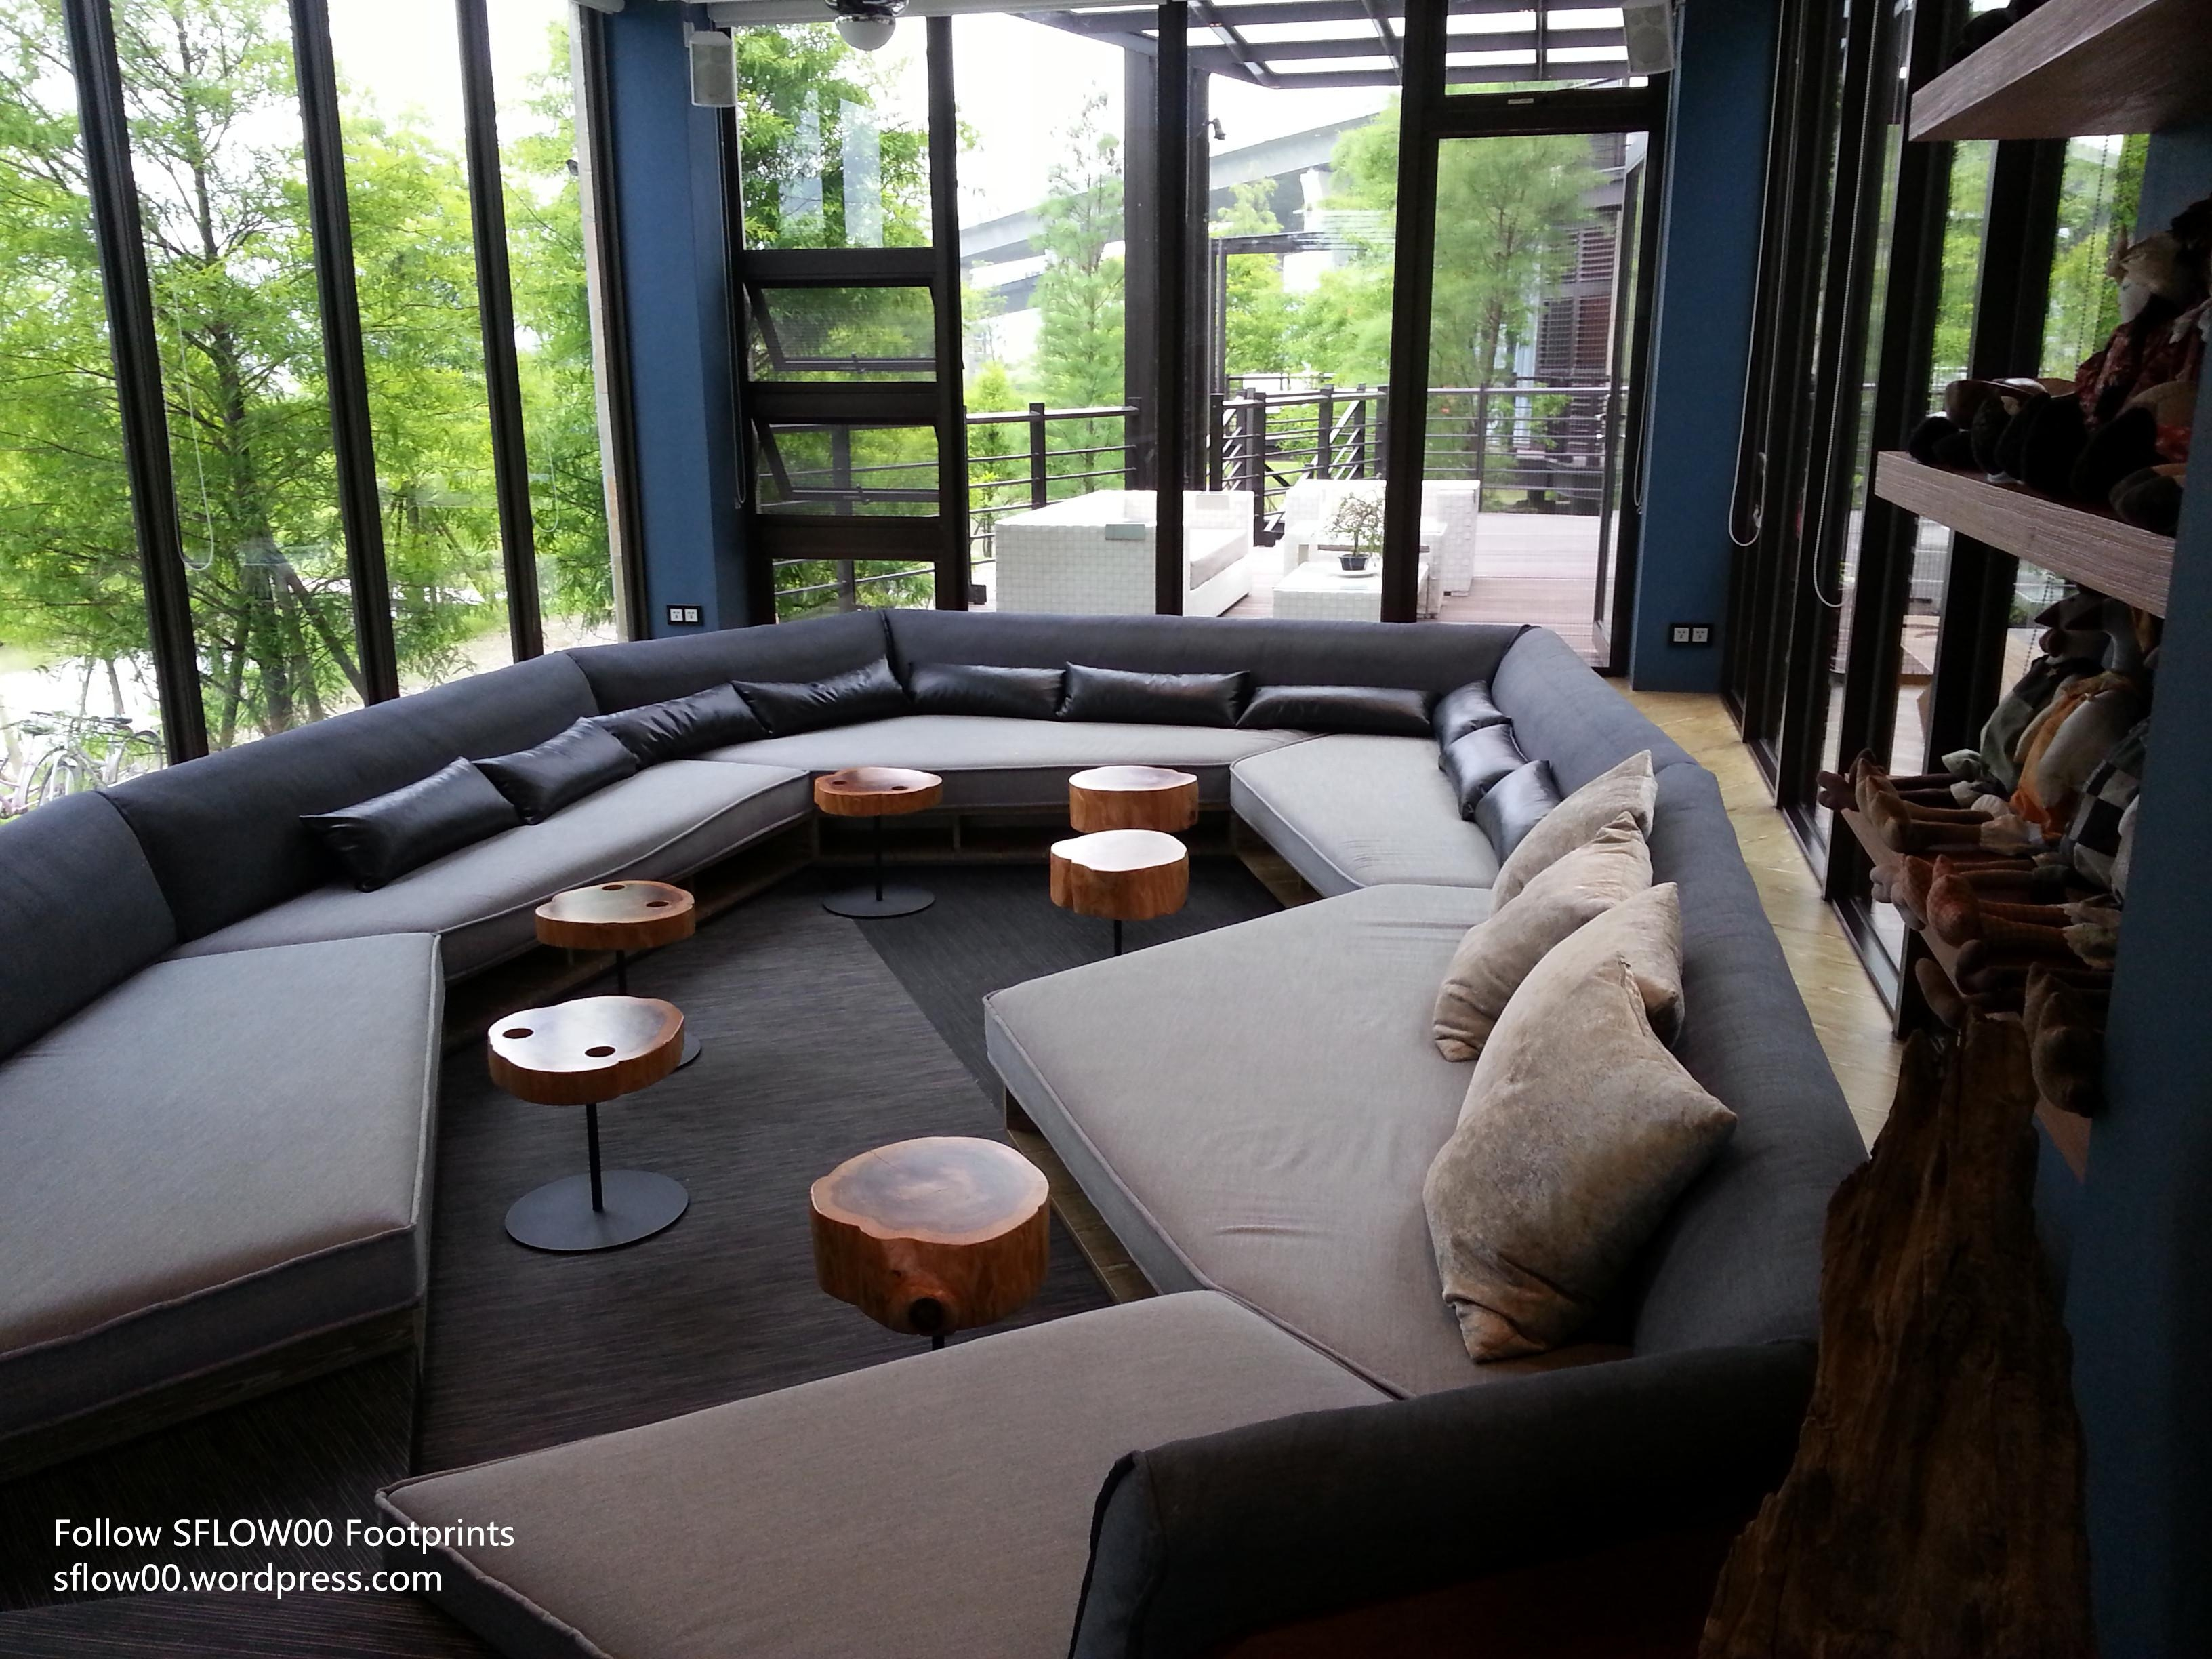 Big Comfy Sofa With Ideas Gallery 18779 | Kengire With Regard To Big Comfy Sofas (View 14 of 25)